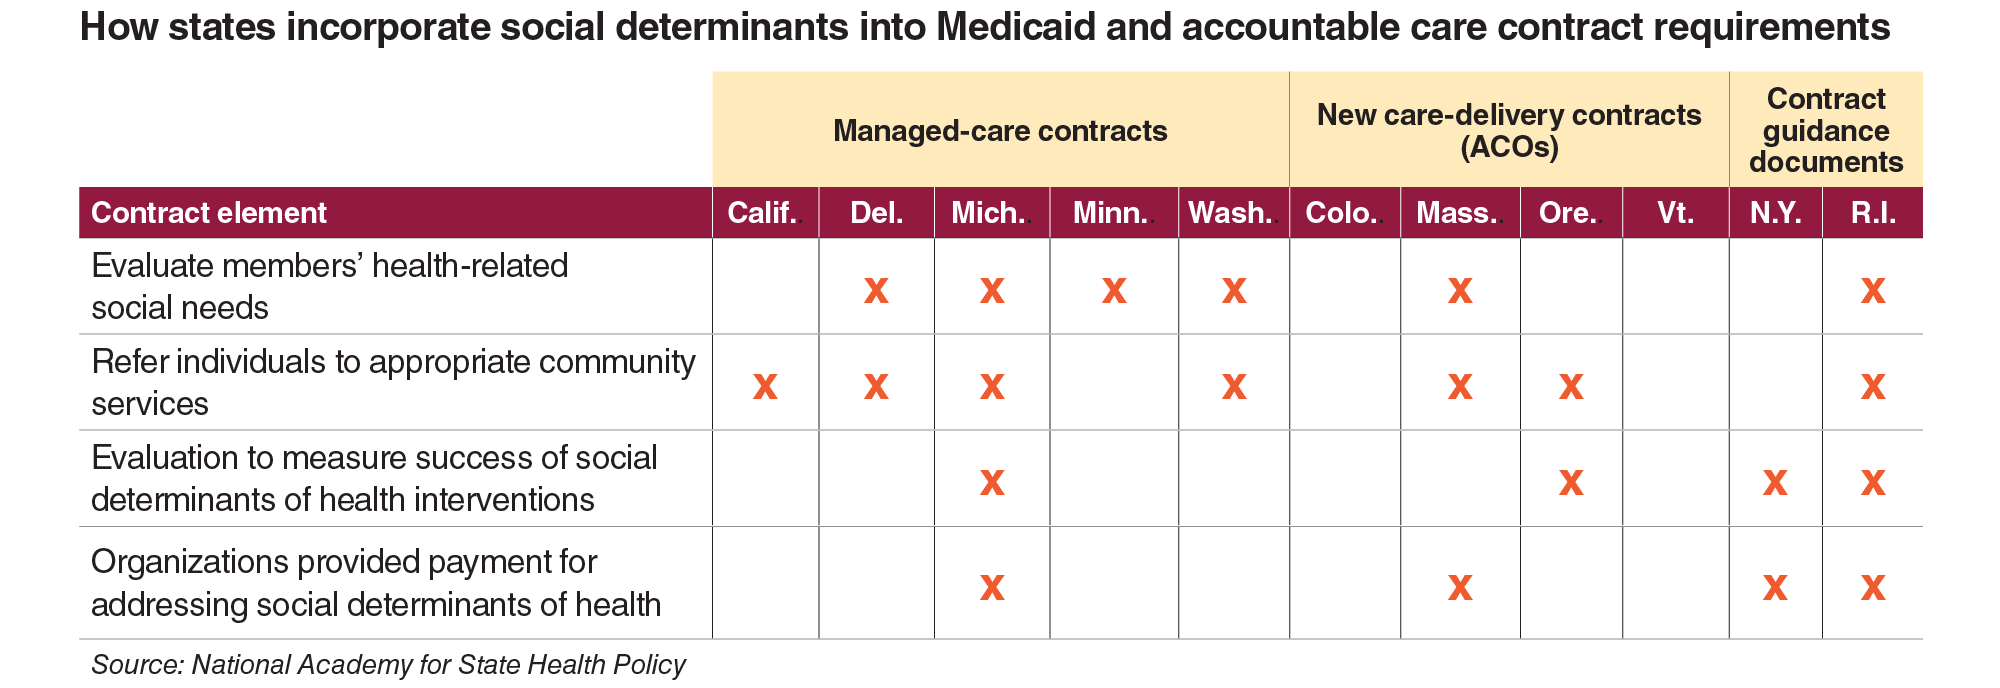 How states incorporate social determinants into Medicaid and accountable care contract requirements